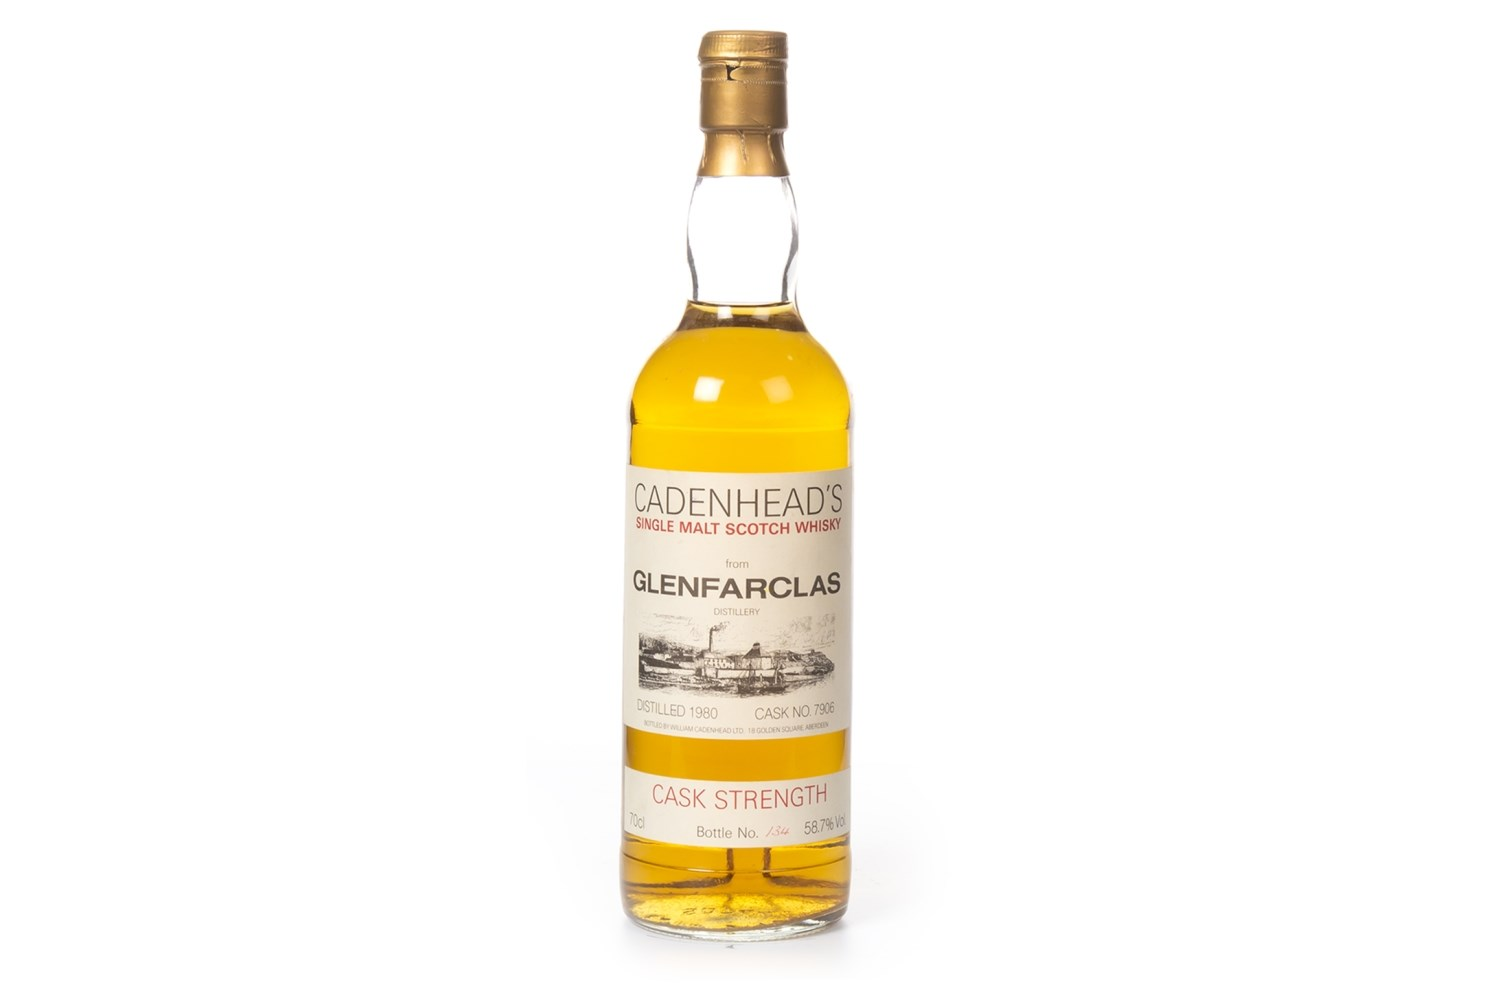 Lot 1019 - GLENFARCLAS 1980 CADENHEAD'S CASK STRENGTH